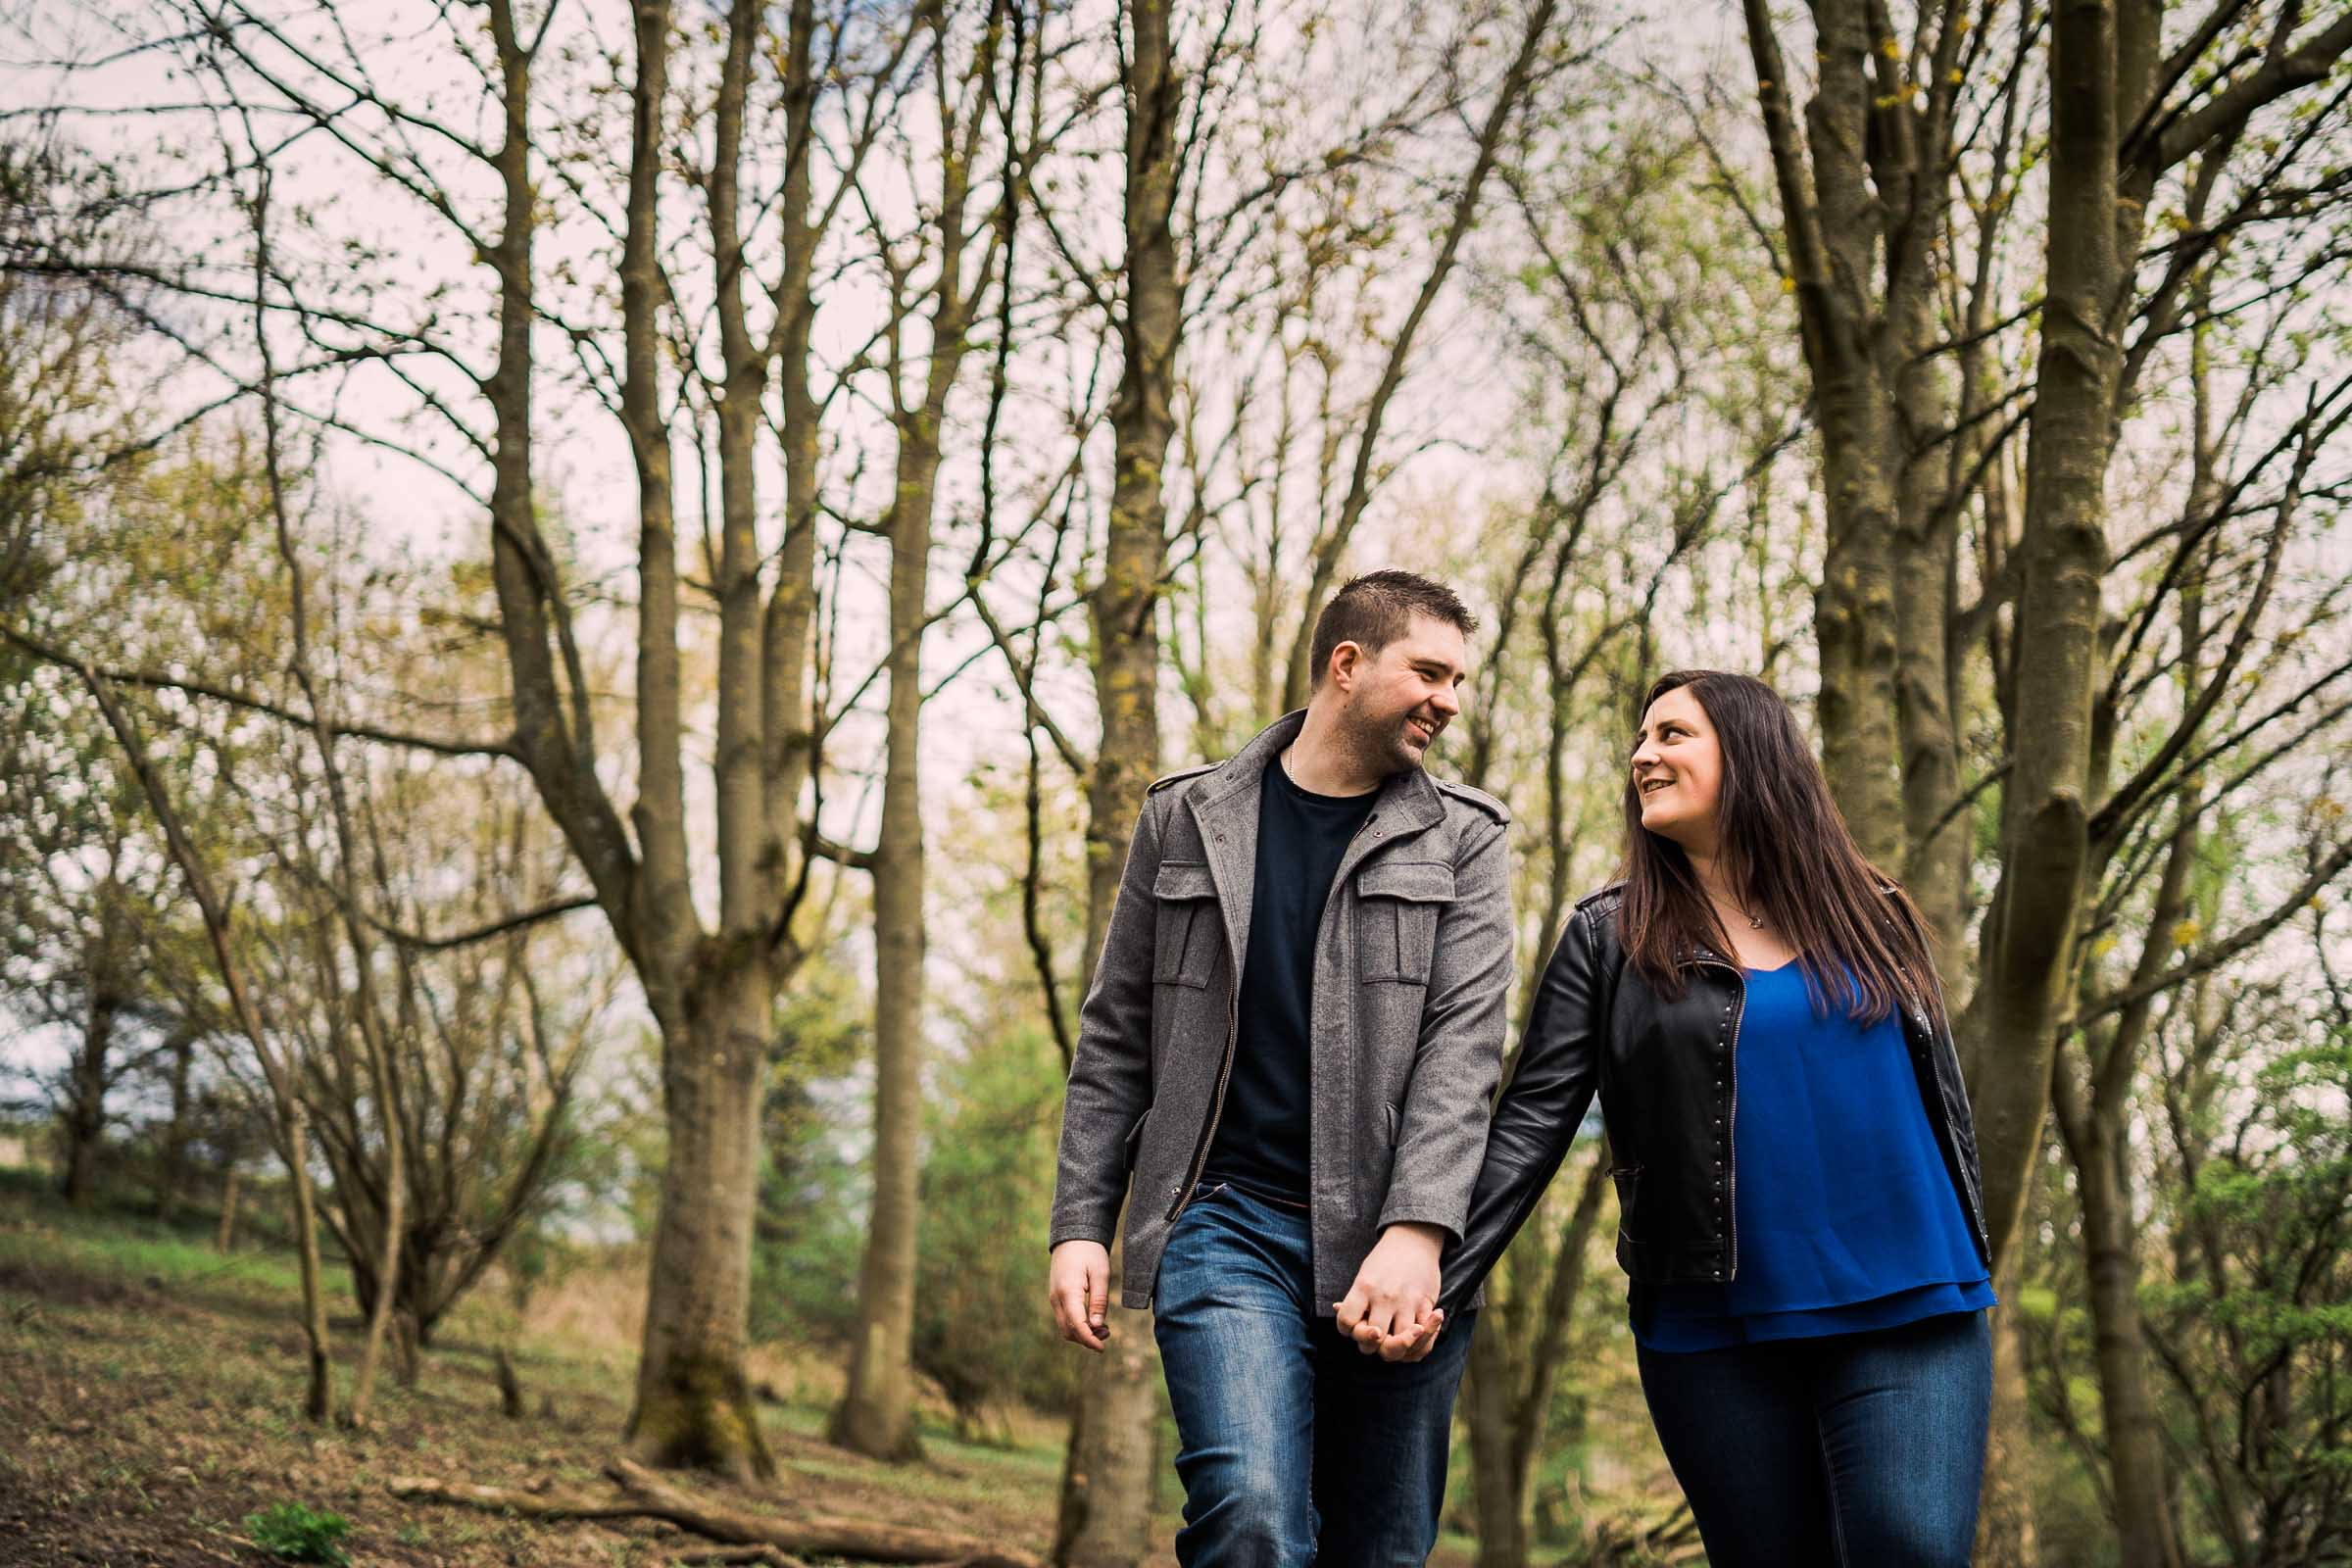 scottish-engagement-photography-elopement-dearlyphotography (44 of 45).jpg